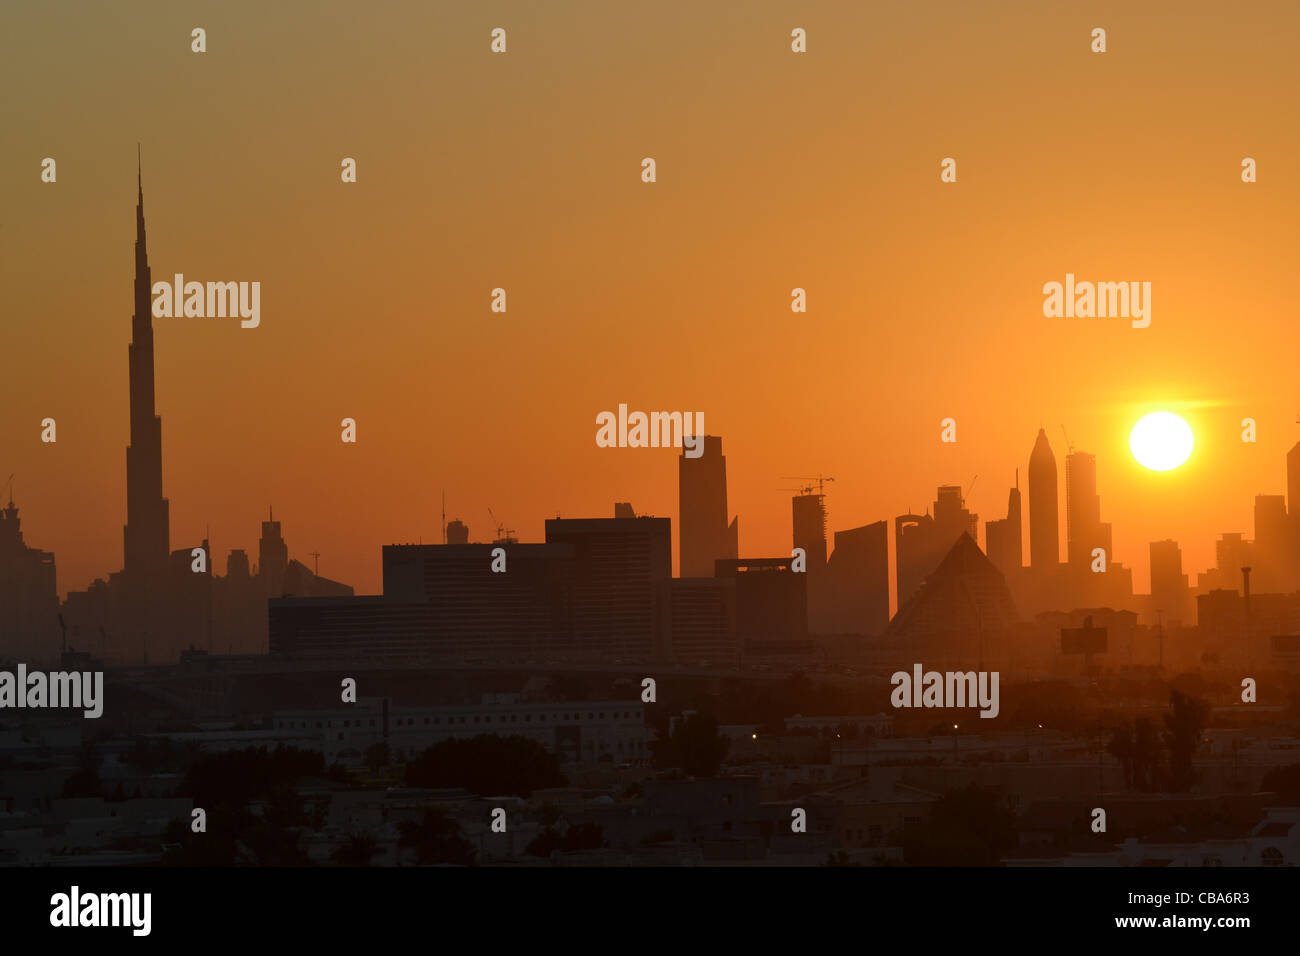 Dubai skyline at sunset with Burj Khalifa on left. - Stock Image